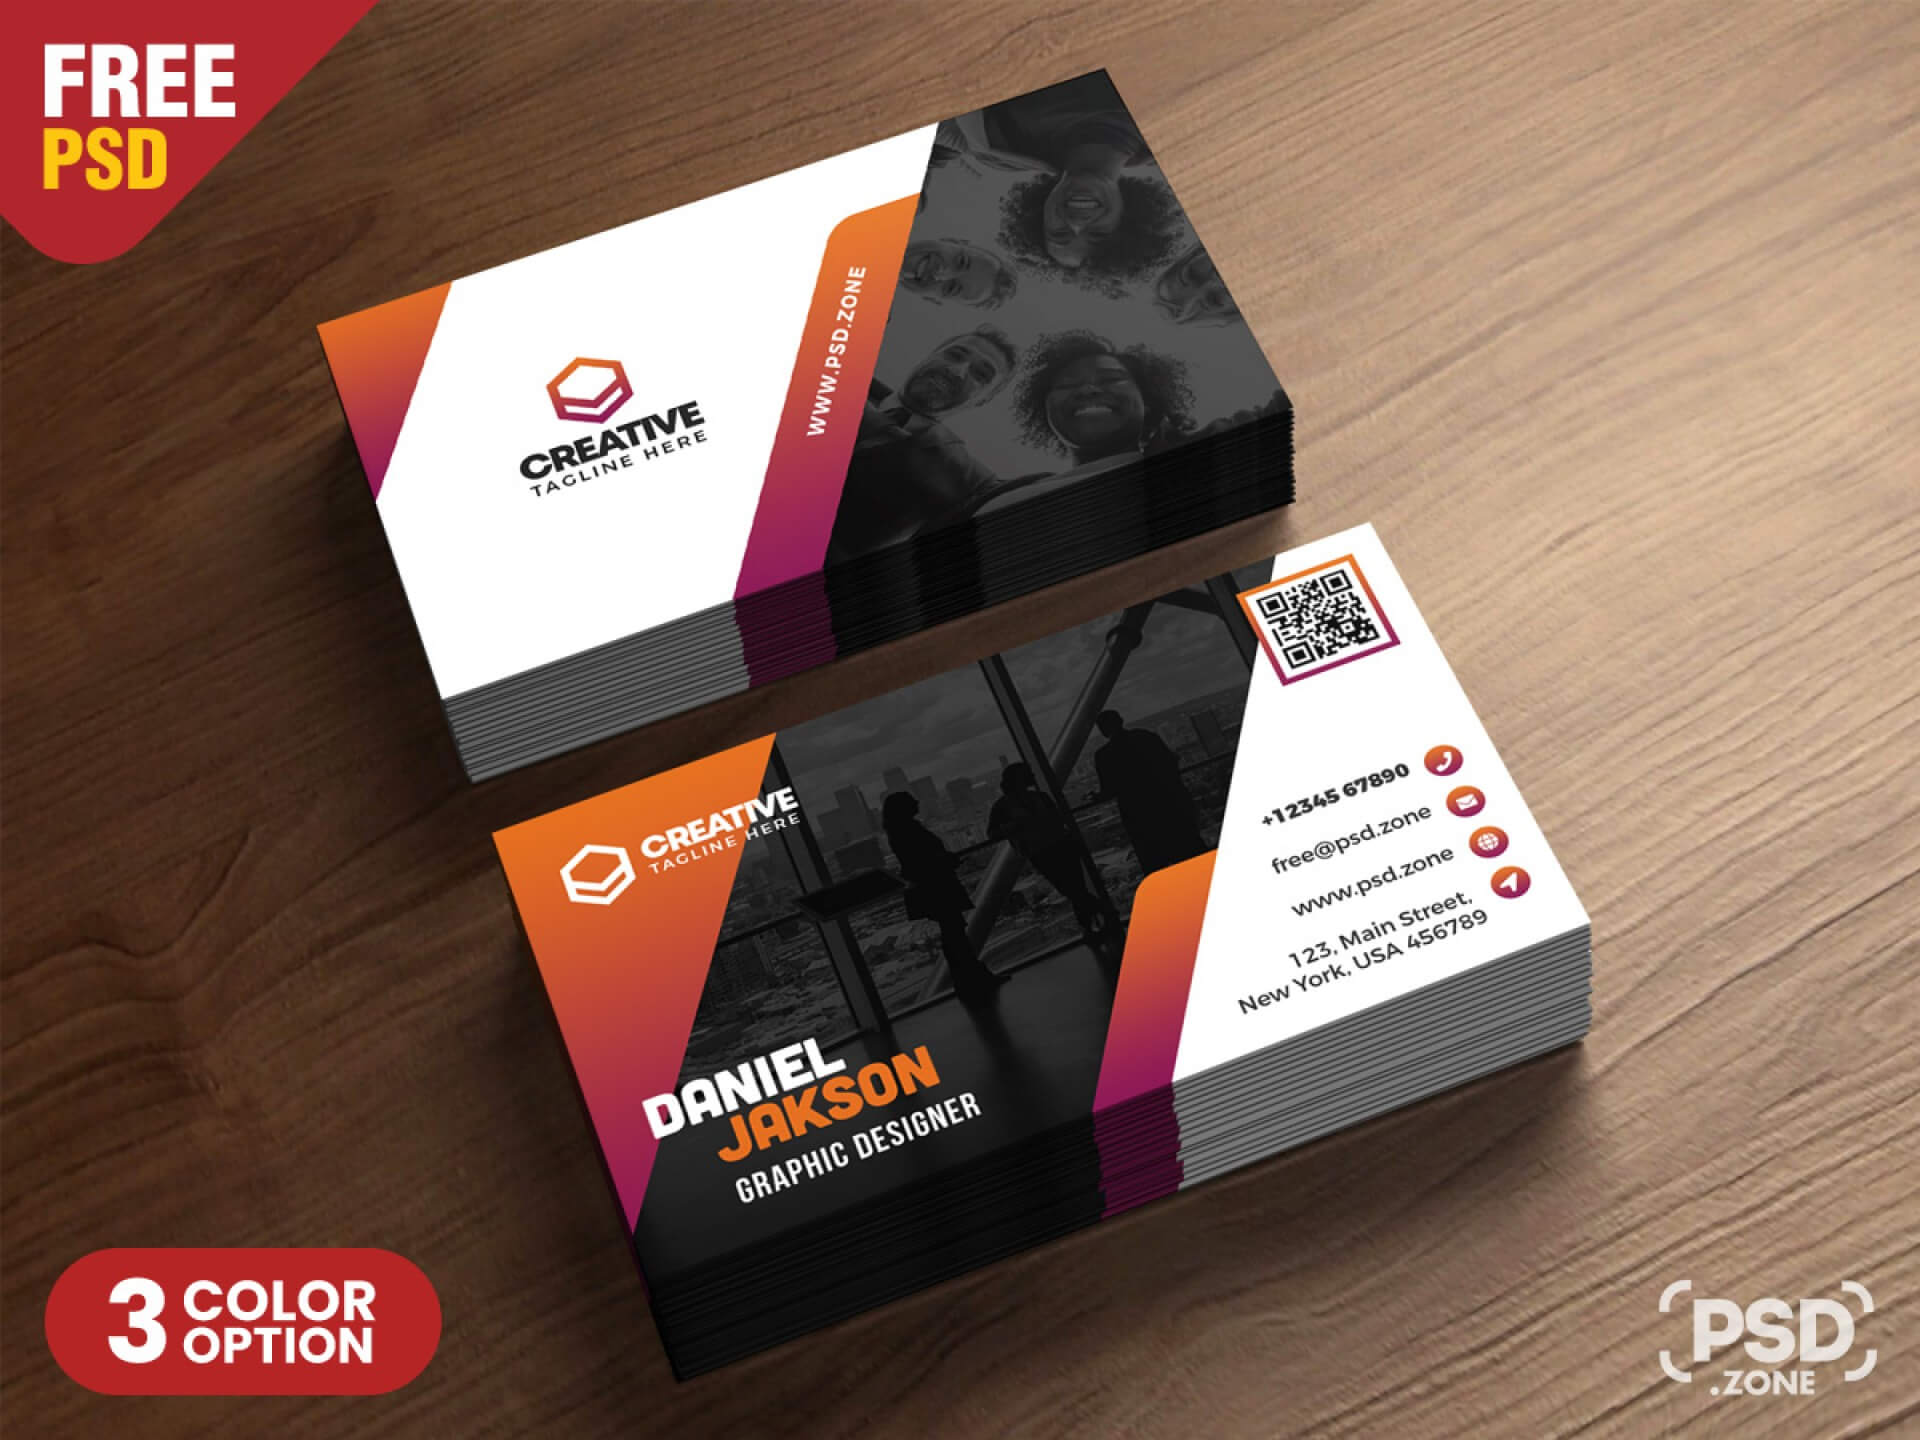 022 Template Ideas Cover Free Business Card Templates in Photoshop Cs6 Business Card Template